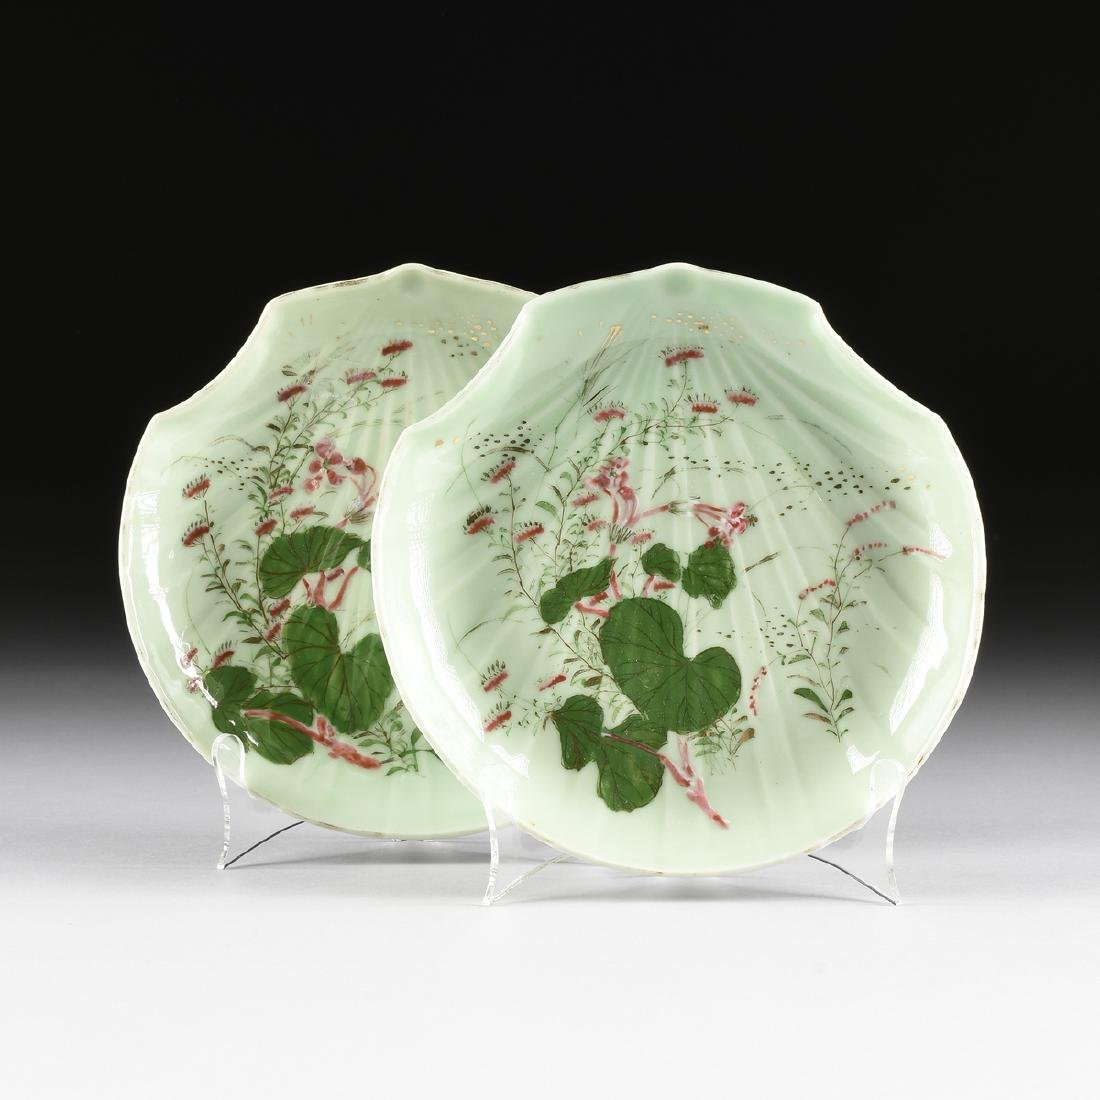 A PAIR OF CHINESE FAMILLE ROSE PAINTED CELADON GLAZED